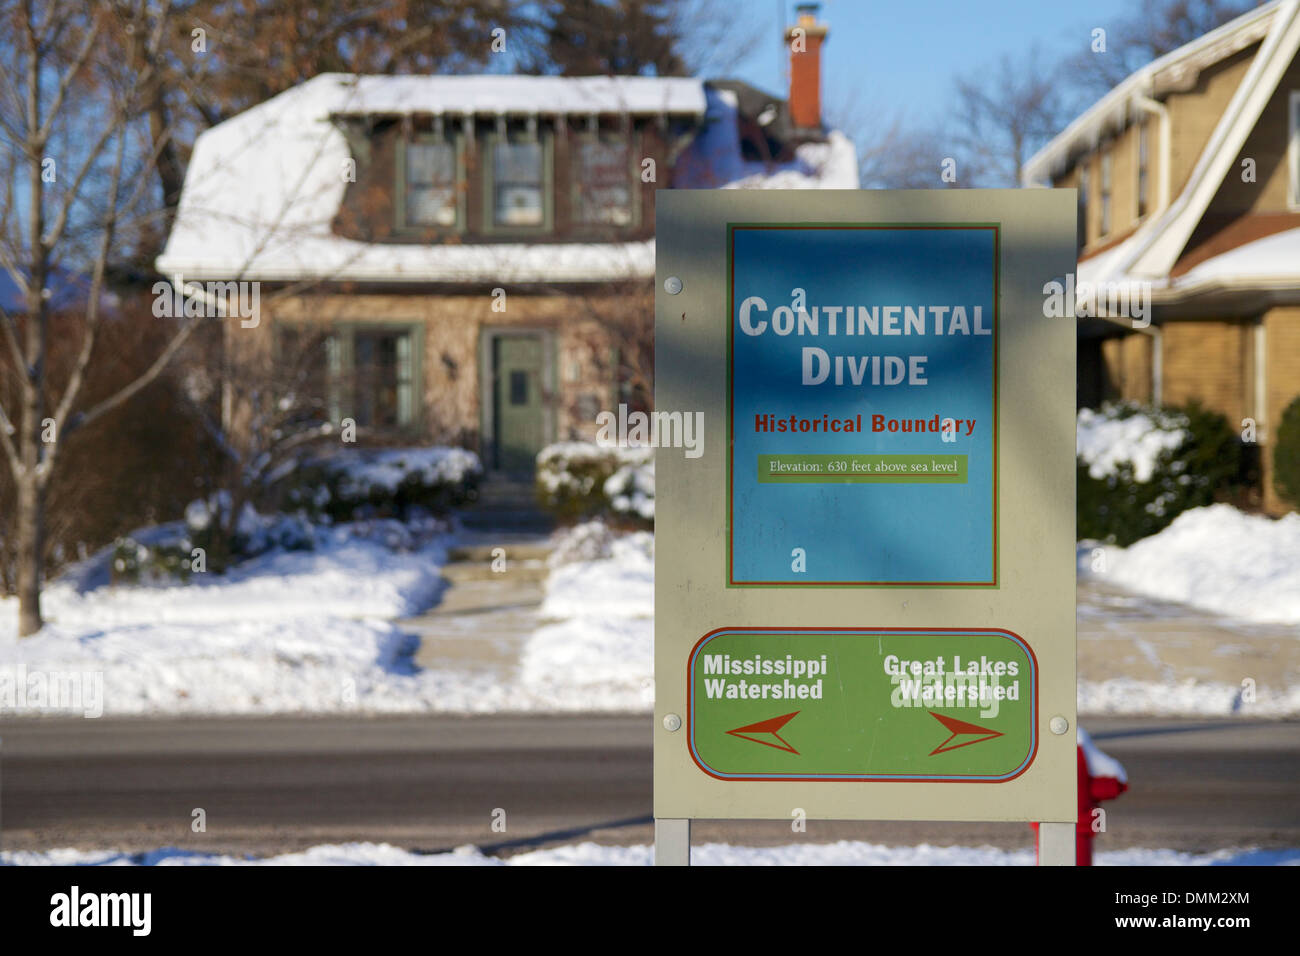 Continental divide marker, Oak Park, Illinois. Mississippi/Great Lakes watershed divide. - Stock Image